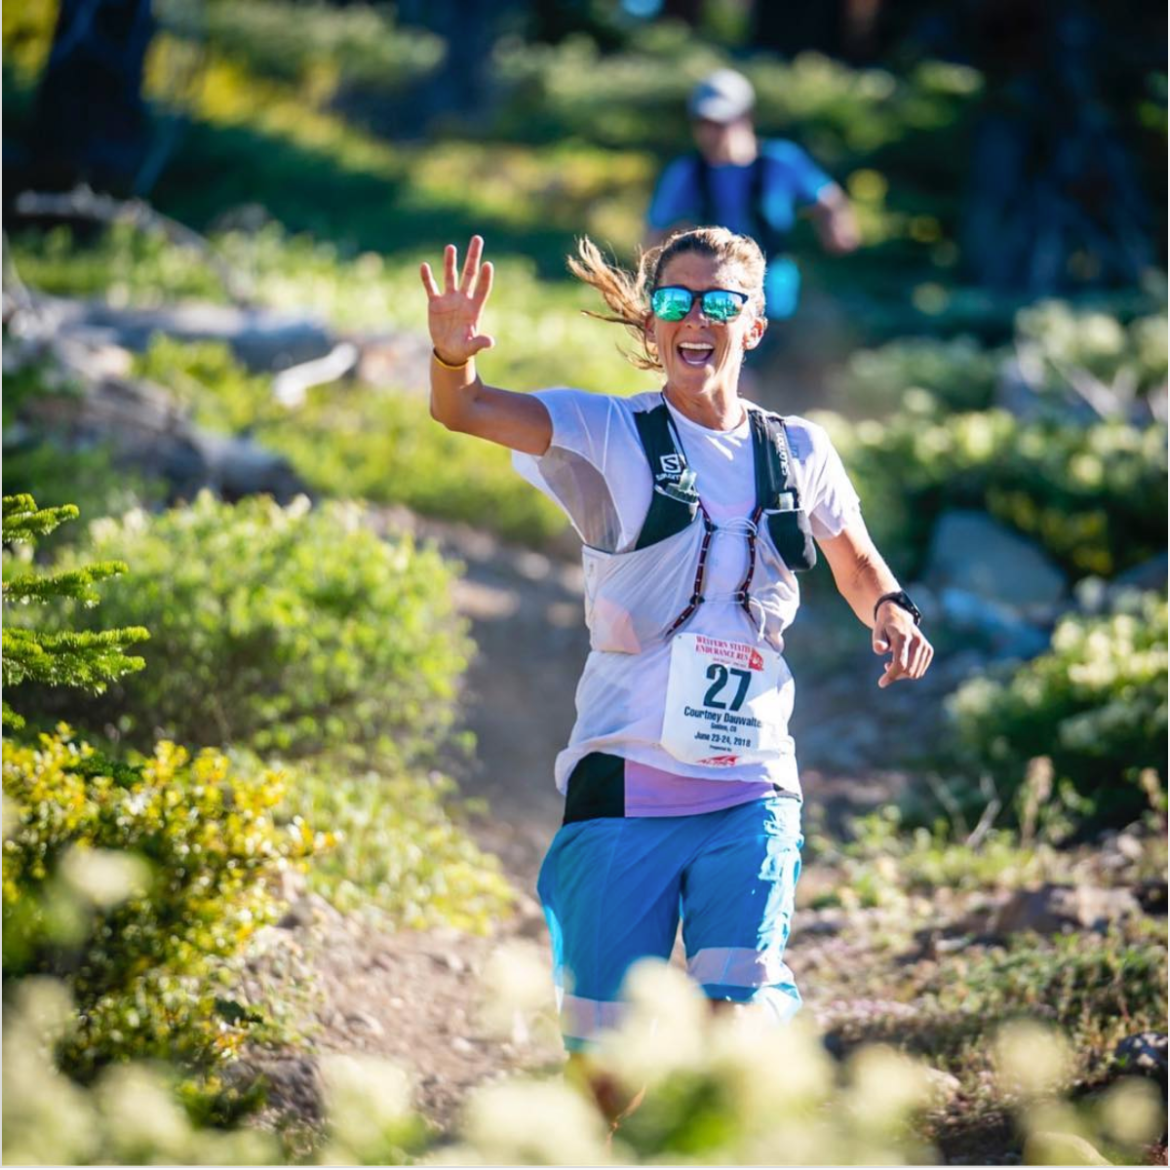 Courtney smiles and waves as she runs down a lush trail near Lake Tahoe during the Western States 100 Endurance Run. She's wearing long blue shorts, a white t shirt, reflective sunglasses, and a hydration pack.